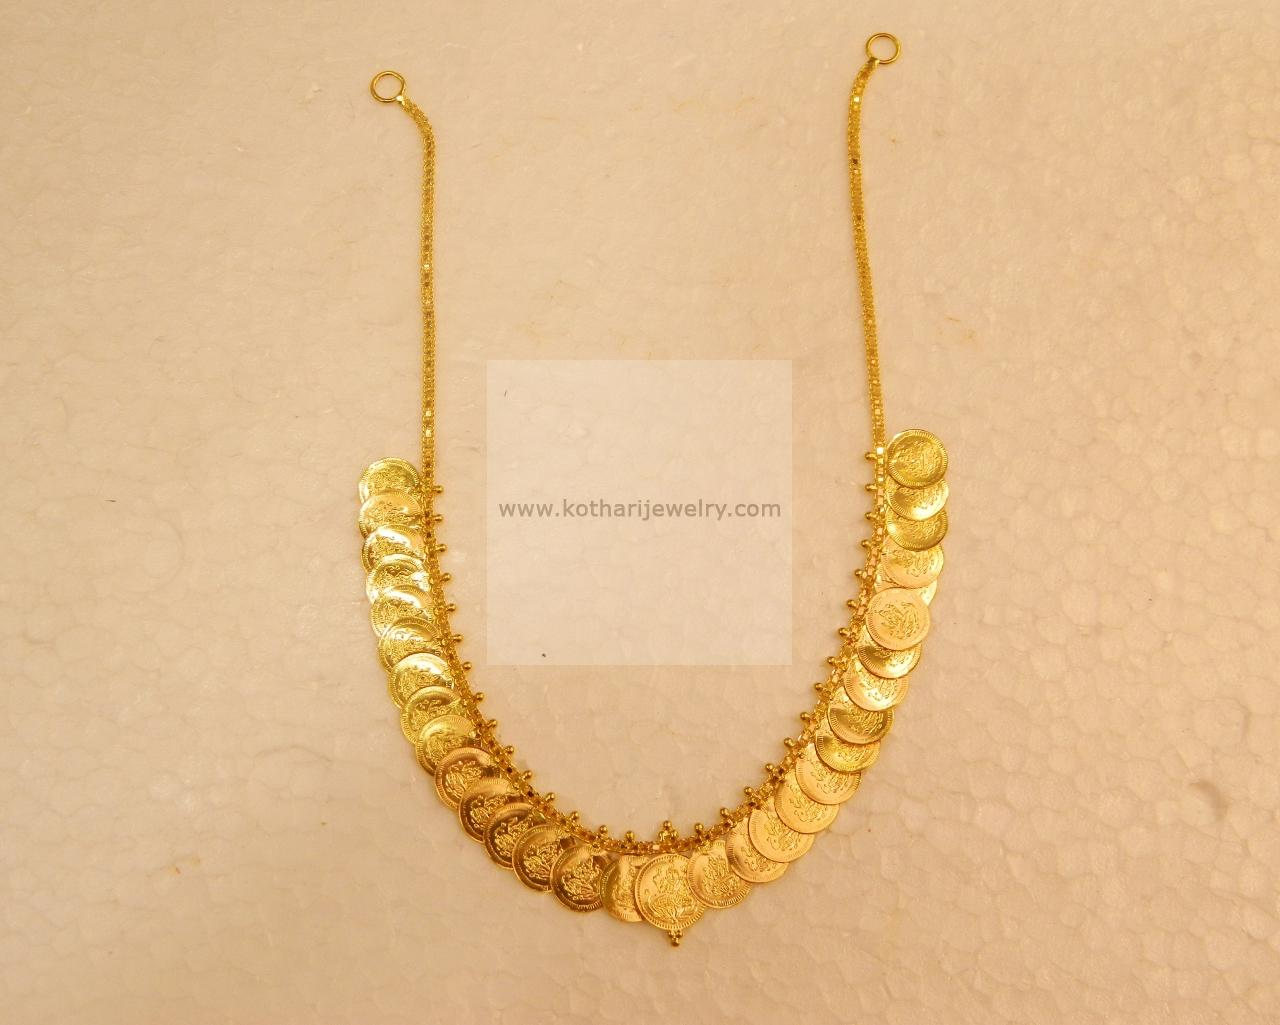 light designs weight product larger view image wholesale detail gold necklace fashion buy nsyl